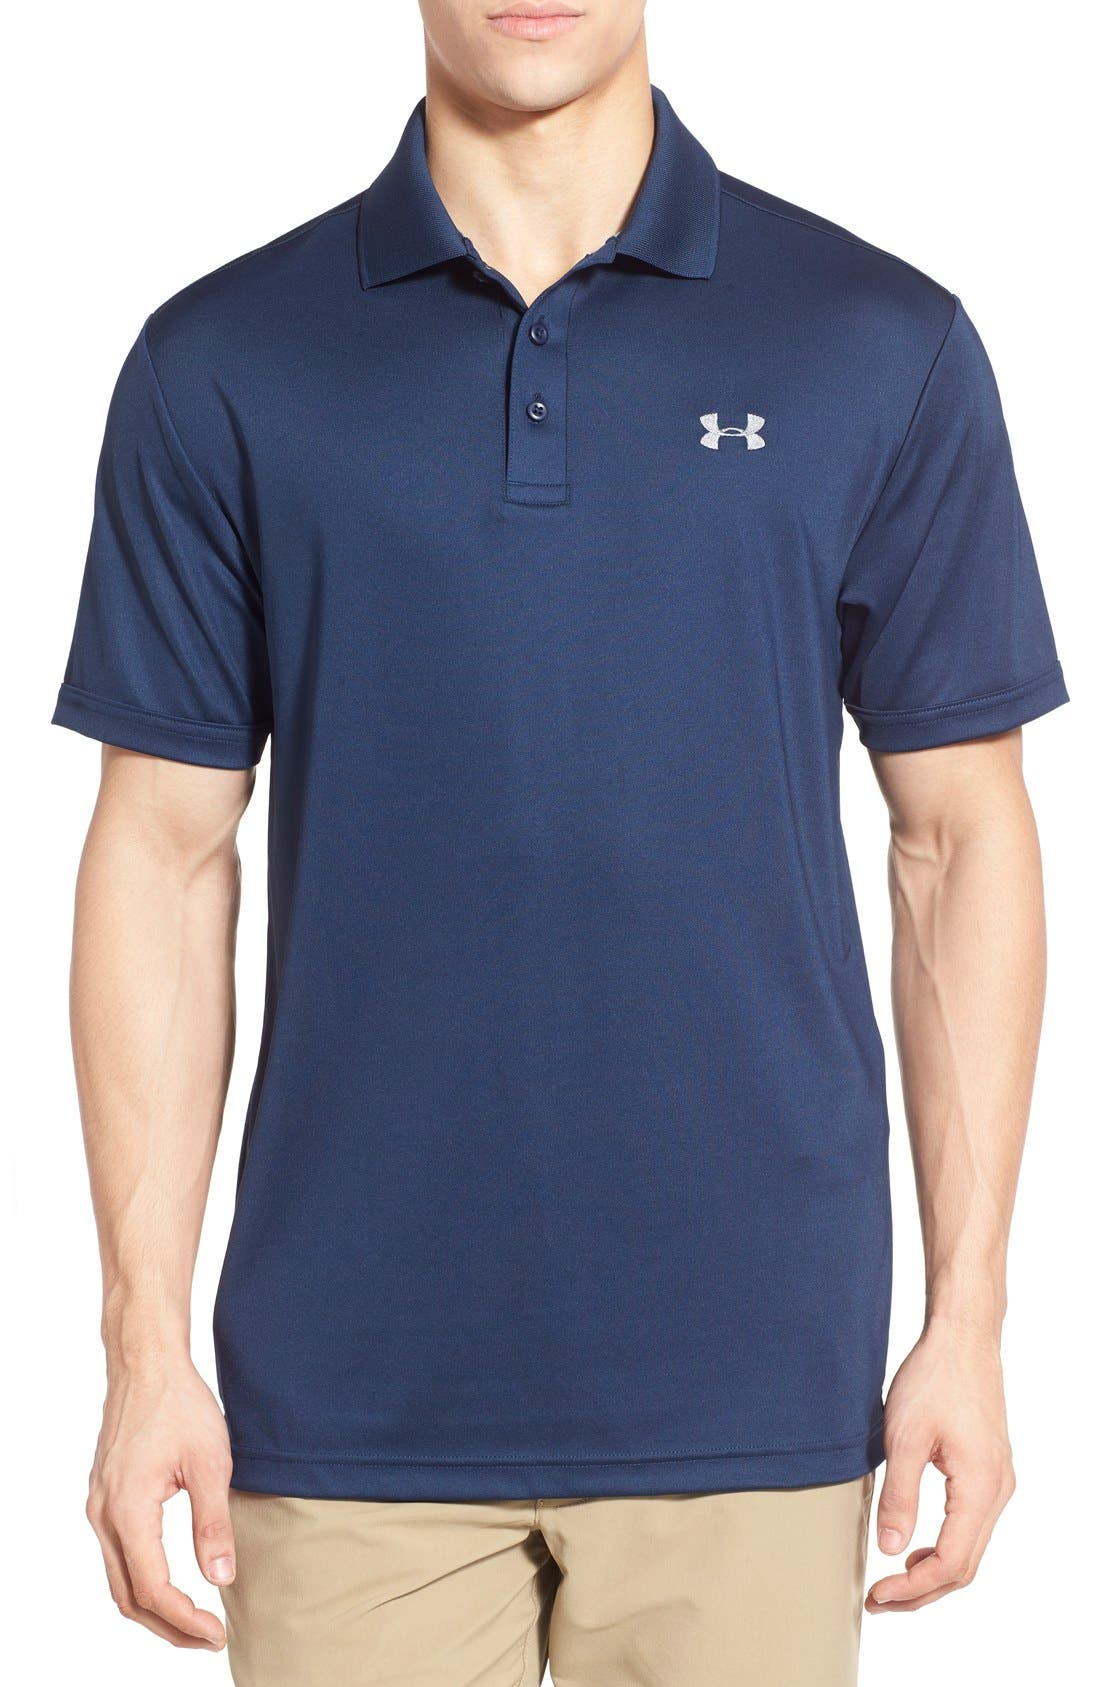 Alternate Image 1 Selected - Under Armour 'Performance 2.0' Sweat Wicking Stretch Polo